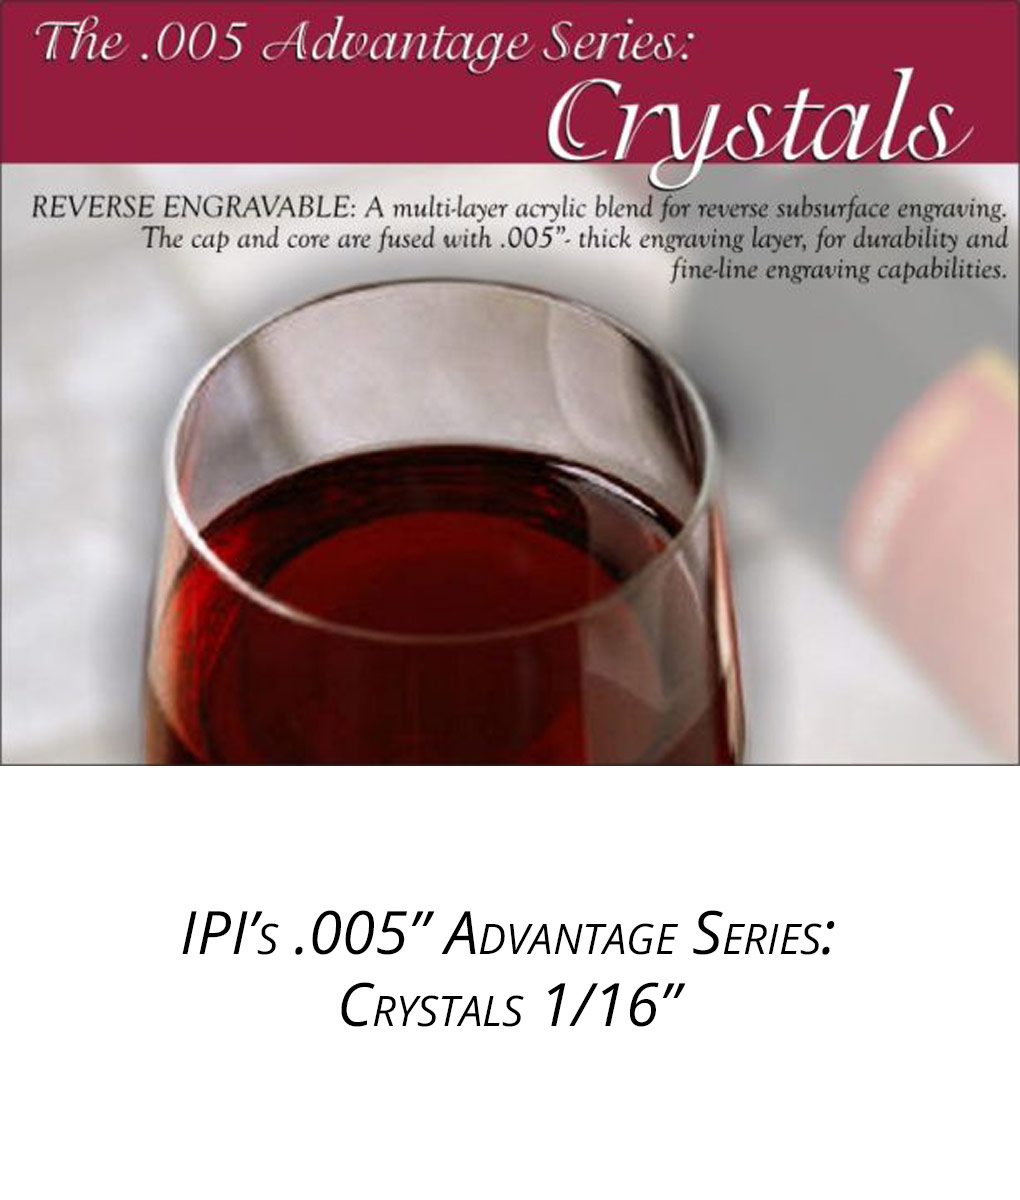 IPI 005 Advantage Series - Crystals engraving material from Main Trophy Supply